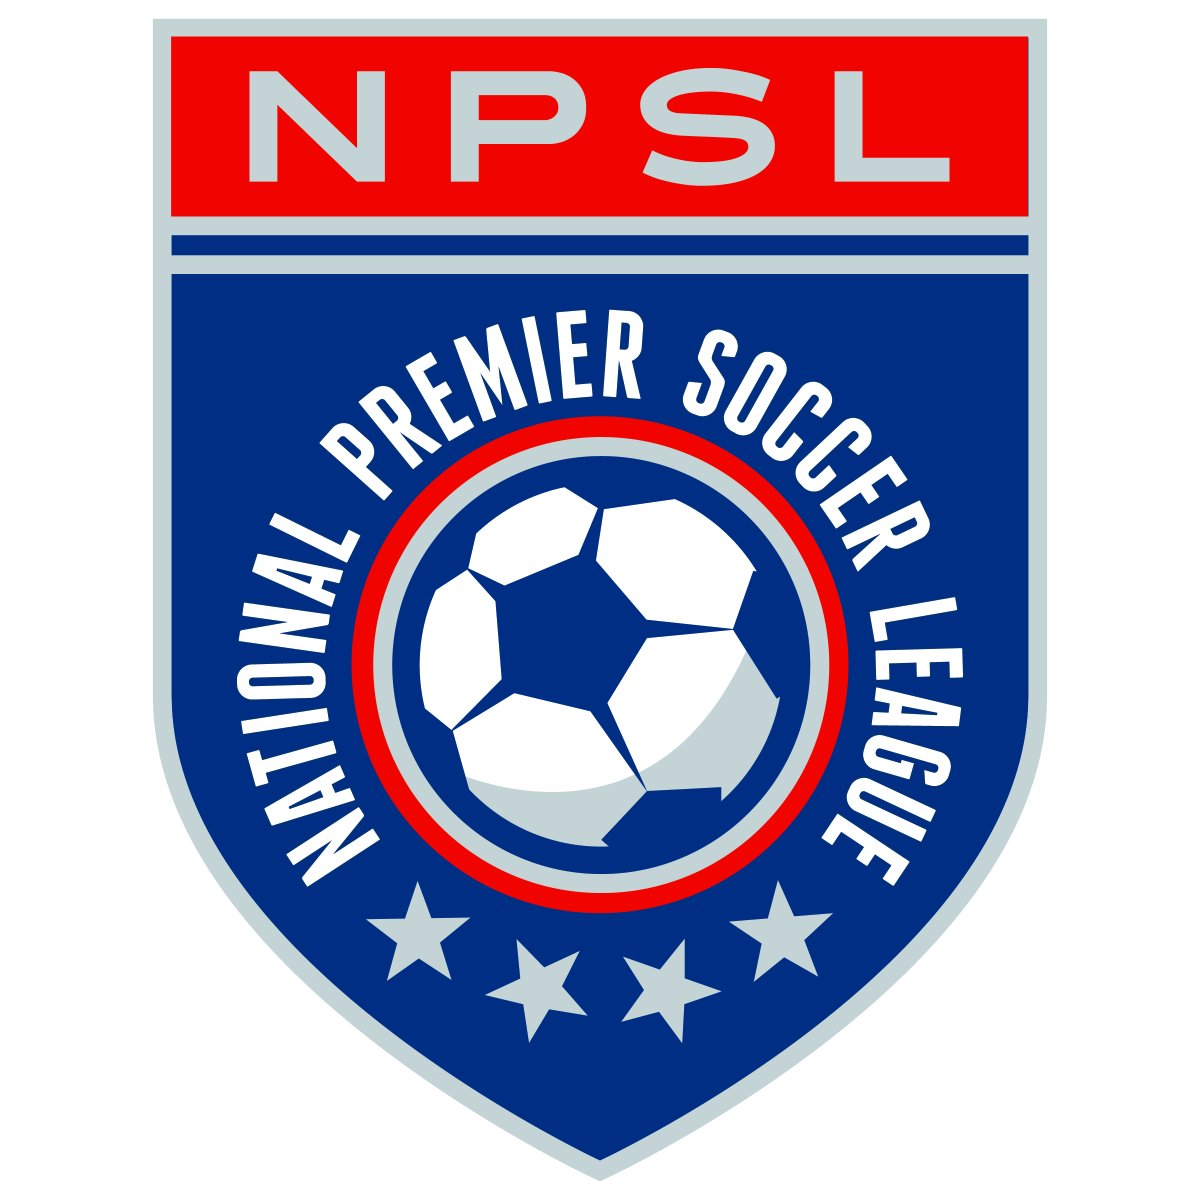 #OTD 2003 (cont.): Back then, since they were not a national league, #NPSL teams wishing to qualify for the tournament would have to enter through the @USAdultSoccer regional tournaments until 2011 when the league was awarded 4 of its own spots. ⬇️